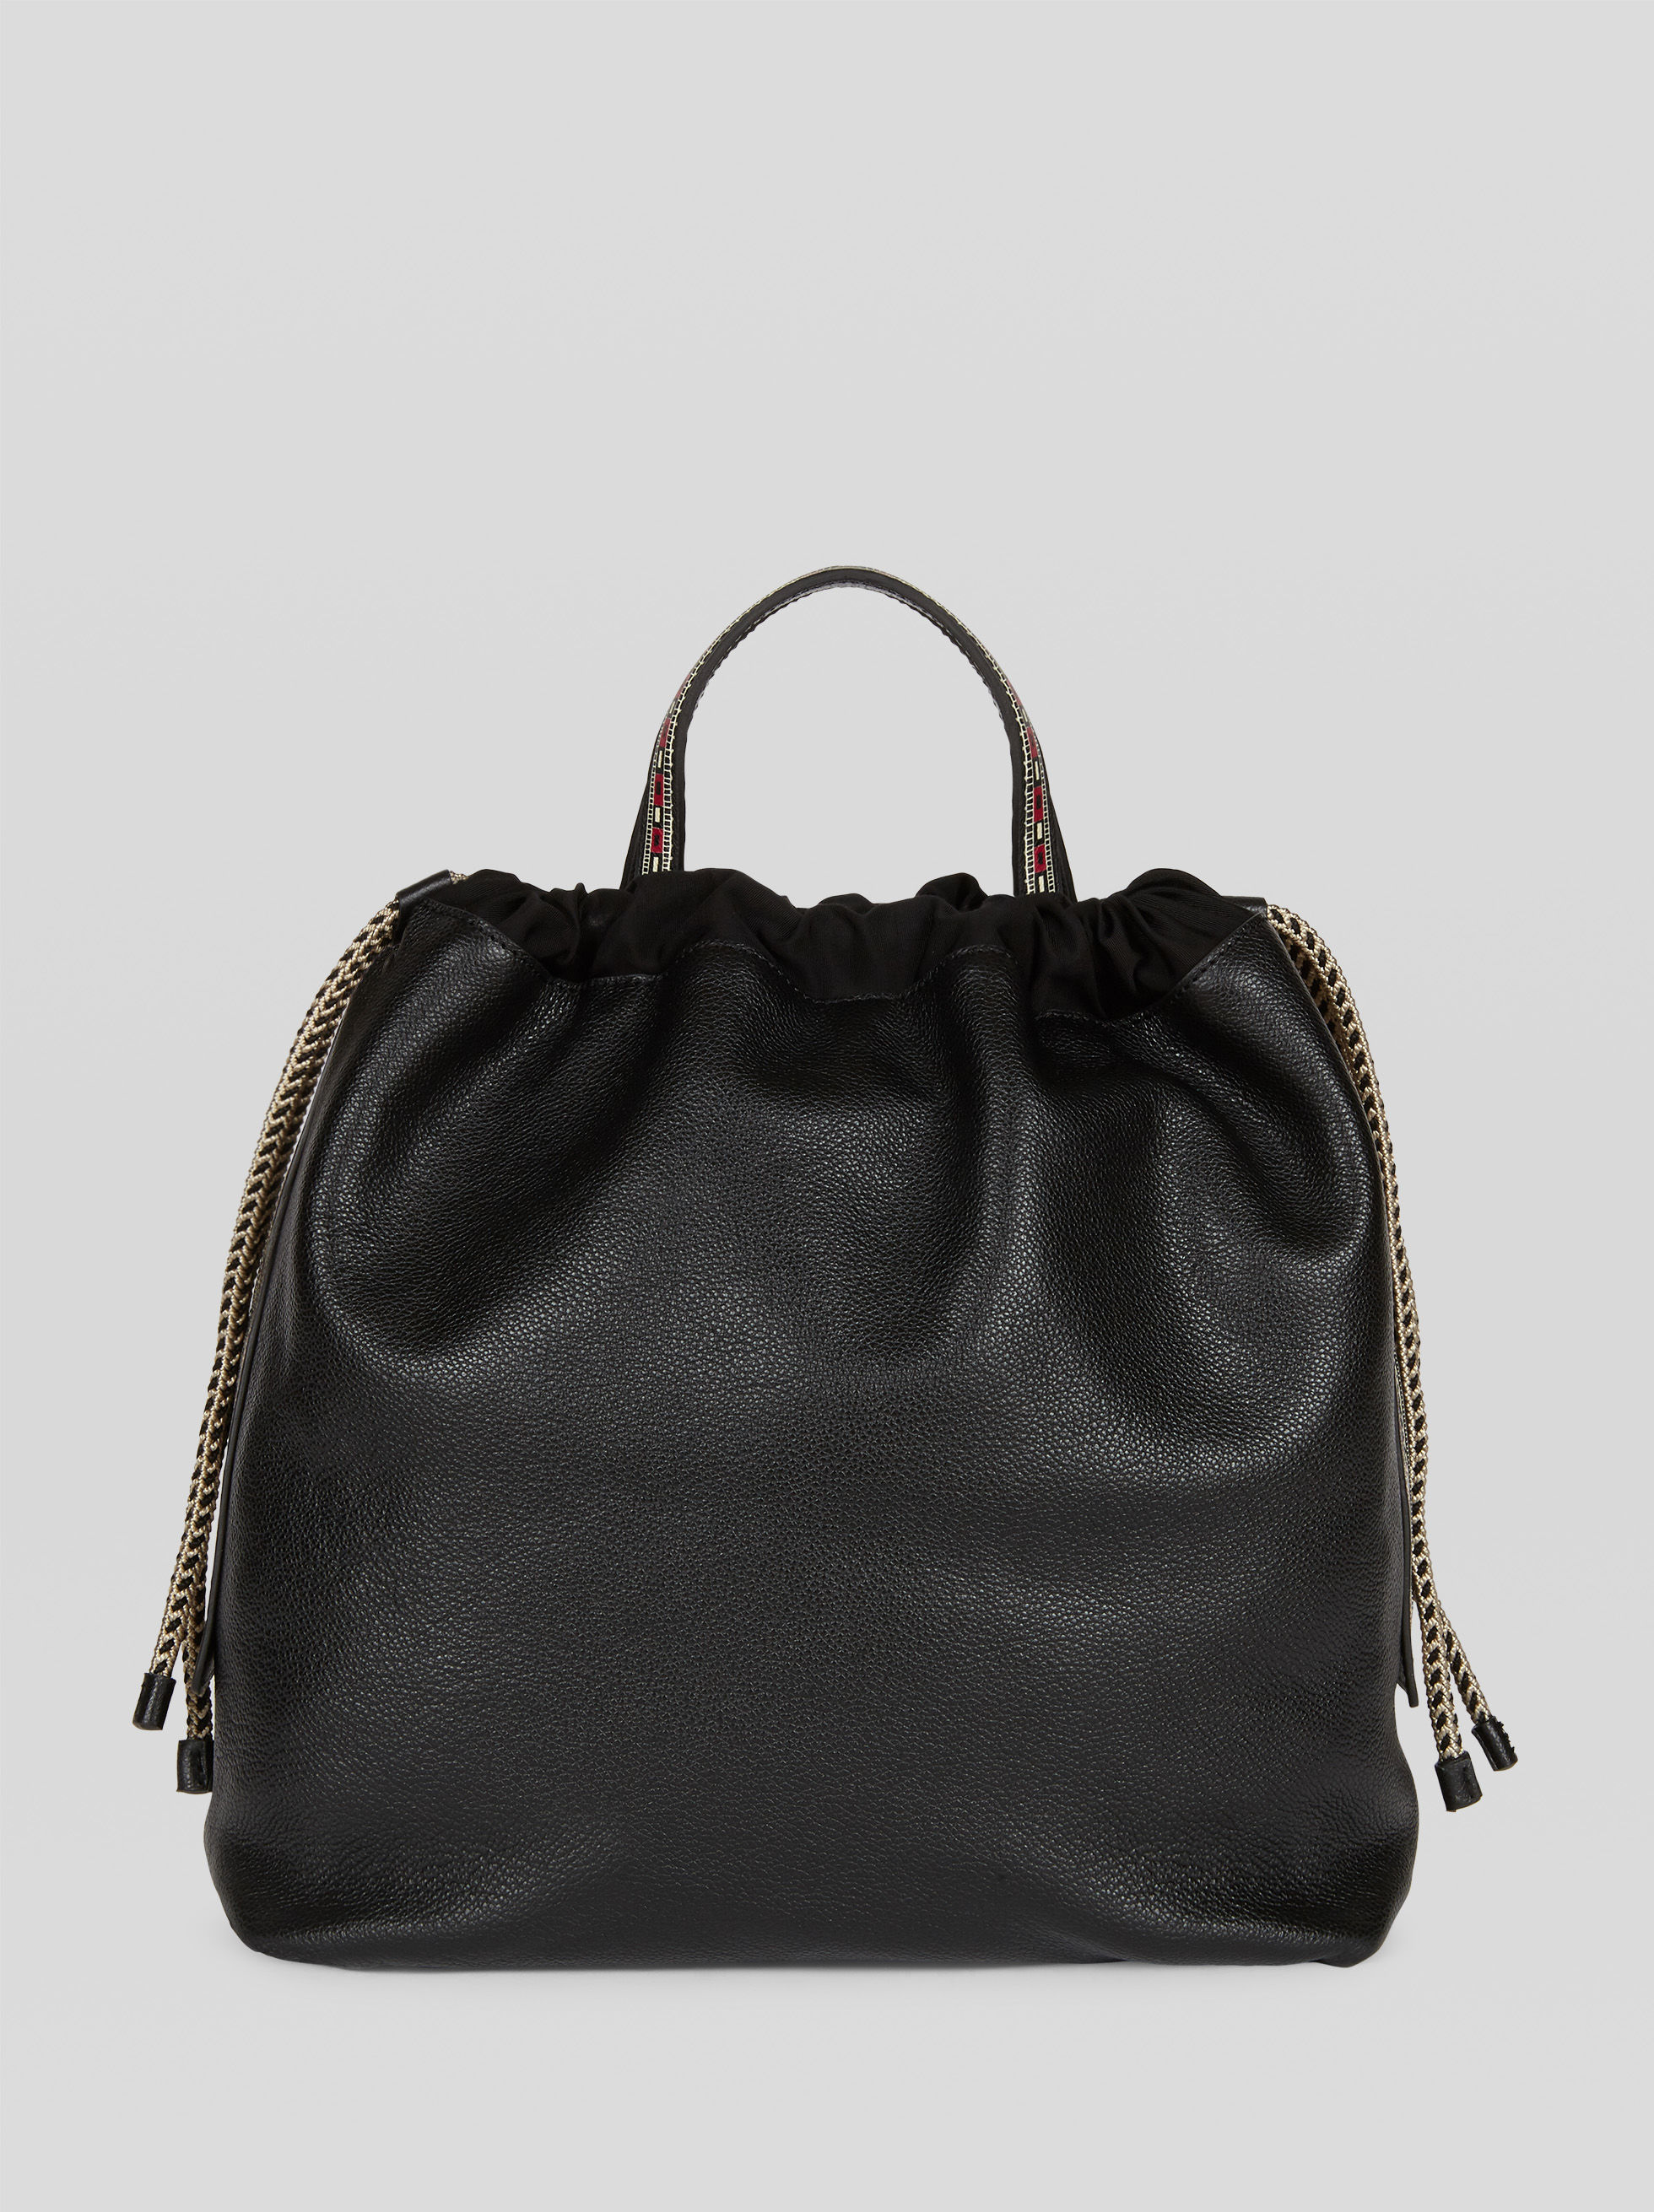 LARGE LEATHER ETROSAC BAG